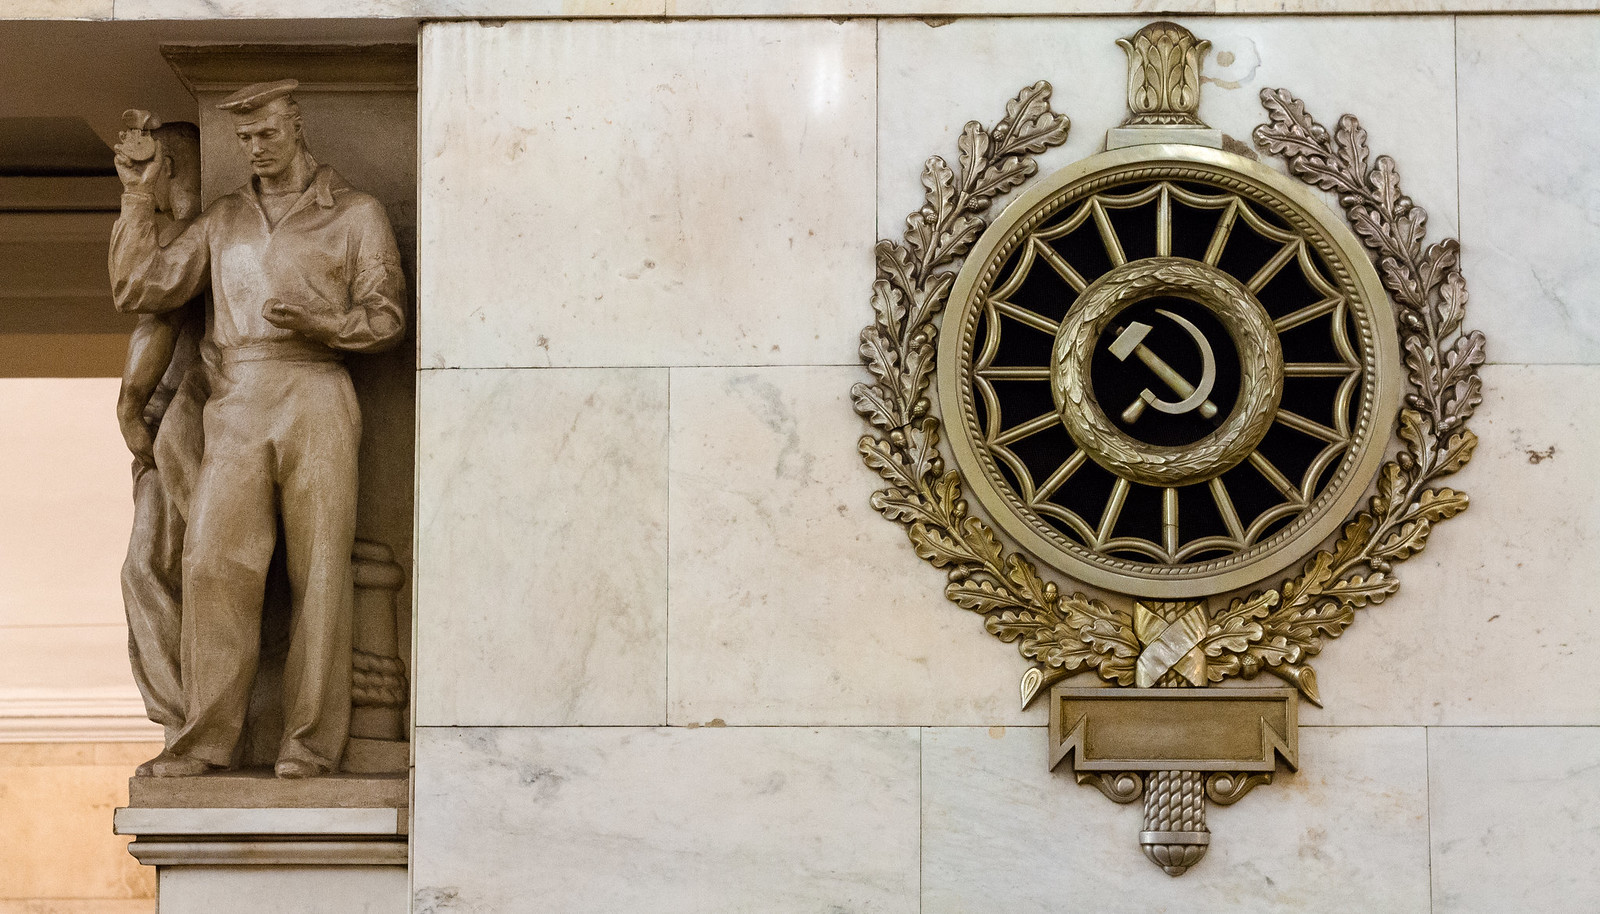 The St Petersburg Metro is one of the most beautiful underground railway systems we have ever encountered. First opened in 1955, the metro of Saint Petersburg, Russia is one of the busiest in the world with five subway lines, 67 stations, over 3.000 trains and 2.5 million passengers a day.